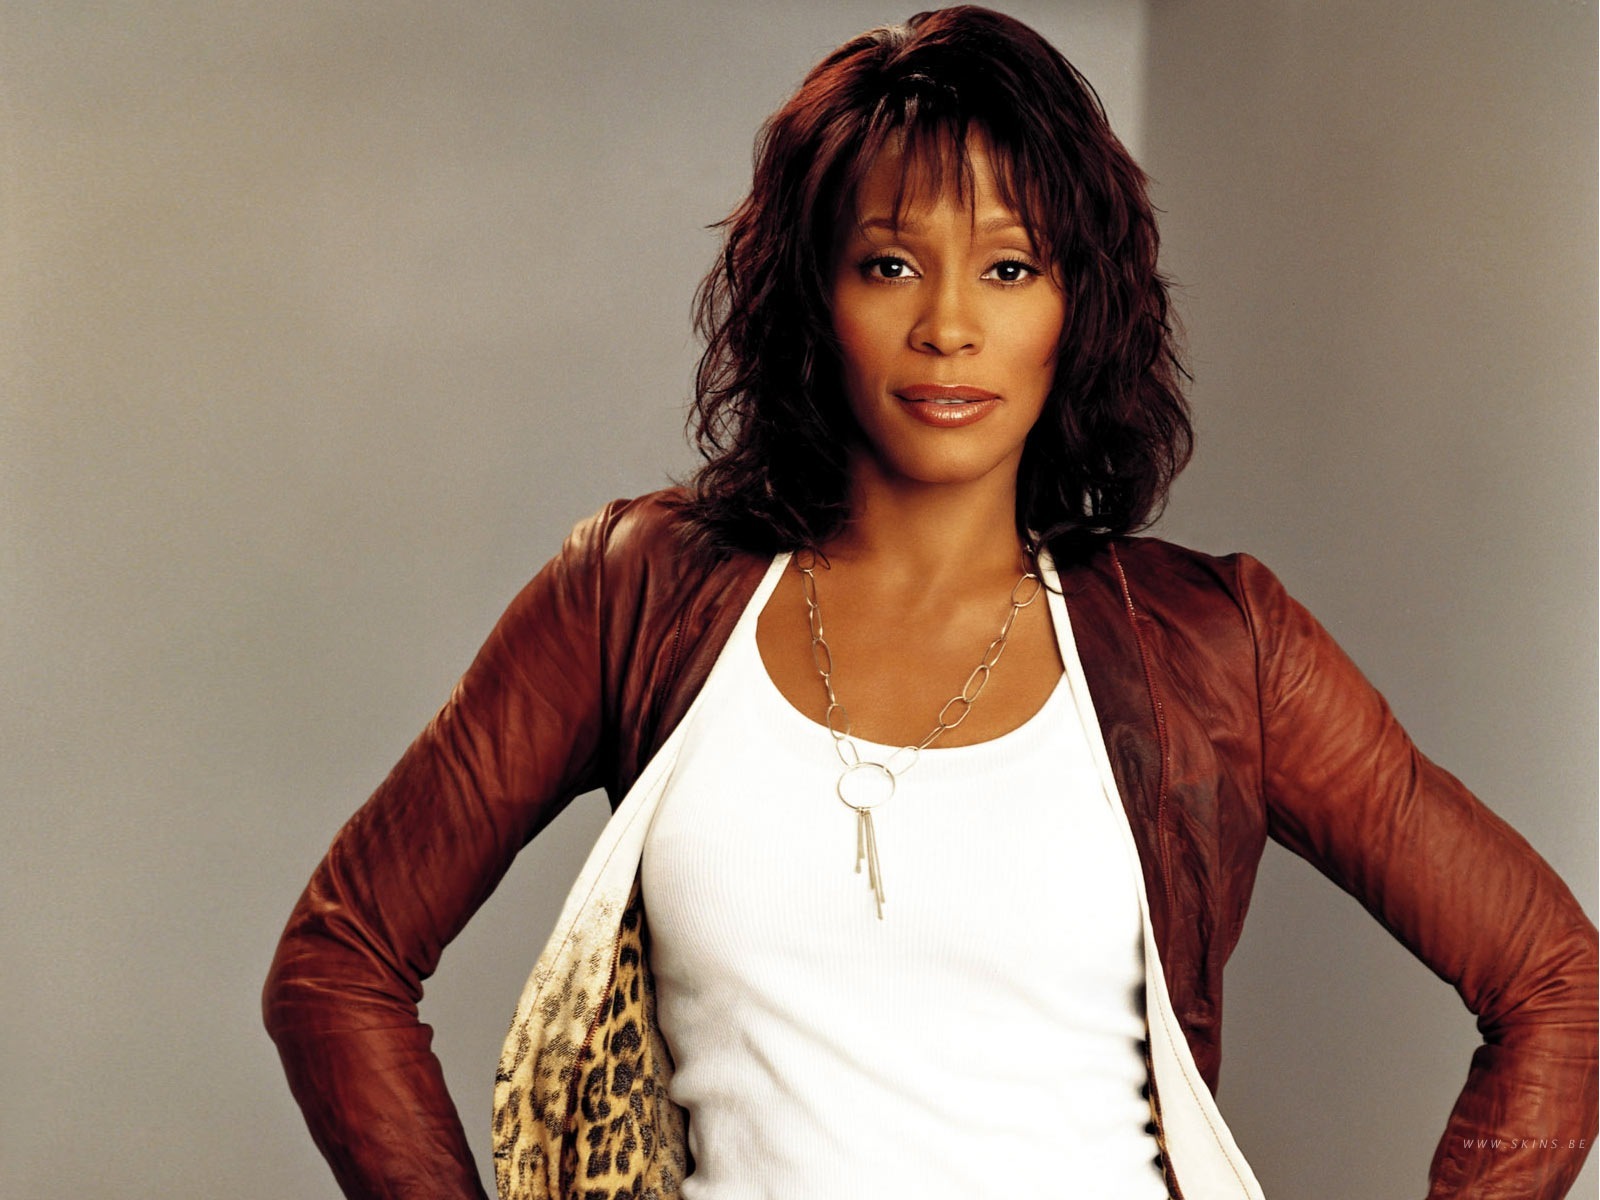 Lifestyle Photos: Whitney Houston Beauty Girl